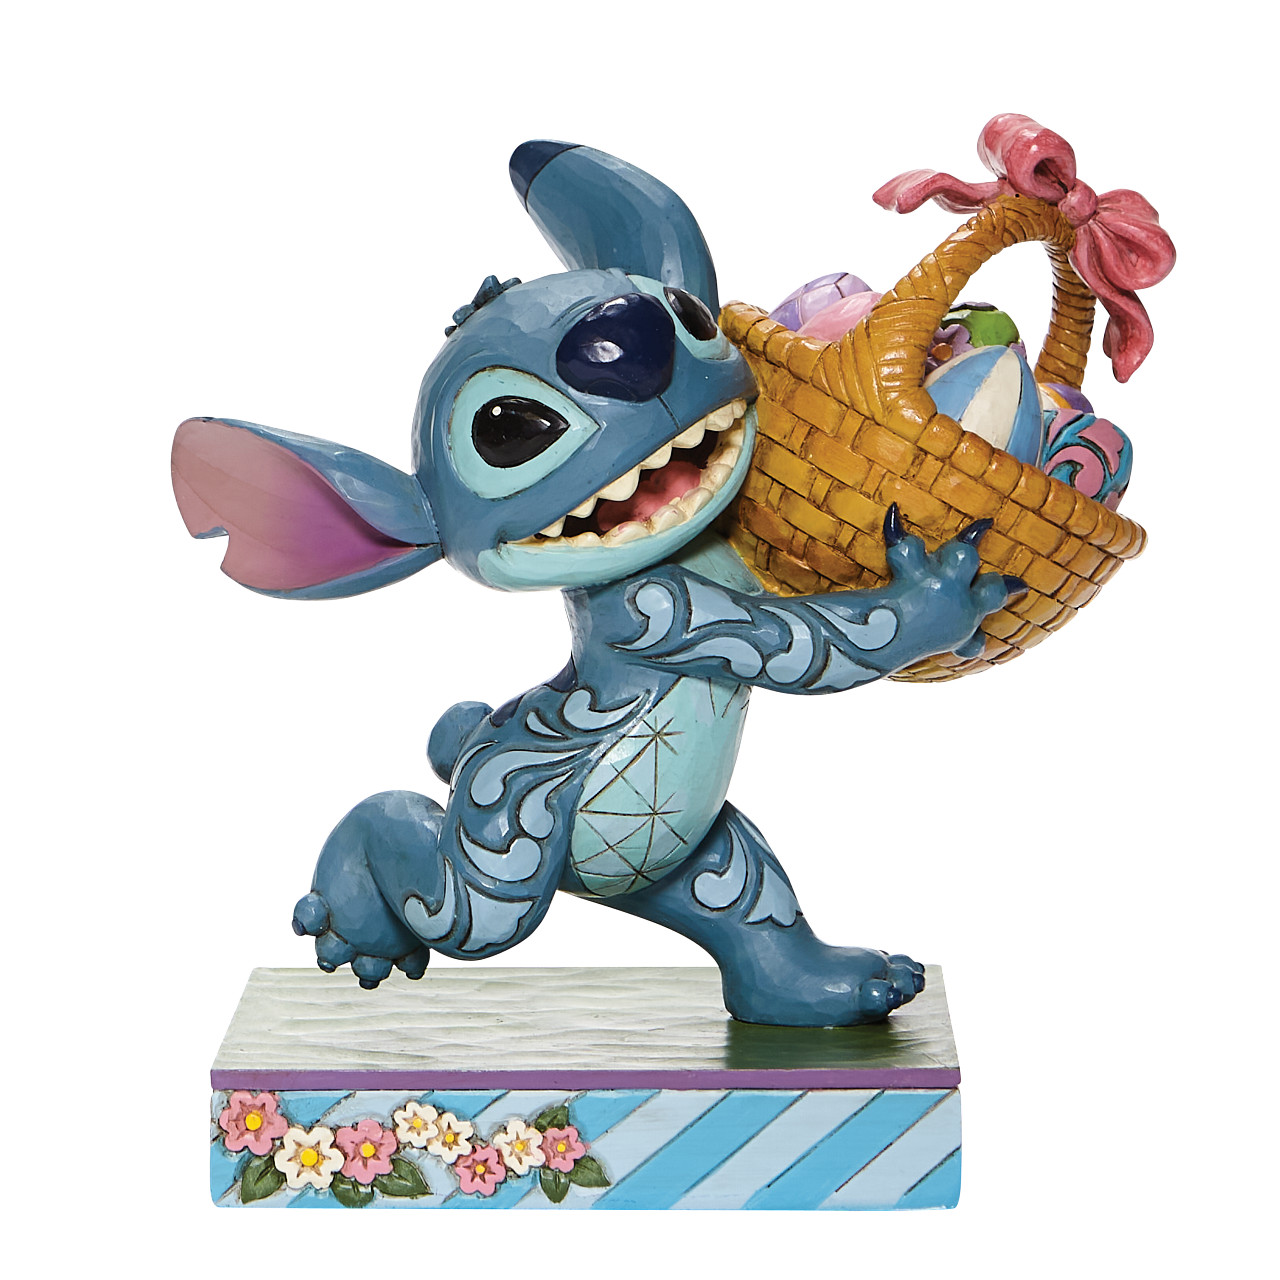 Disney Traditions - 6008075 Bizarre Bunny (Stitch Running Off with Easter Basket)